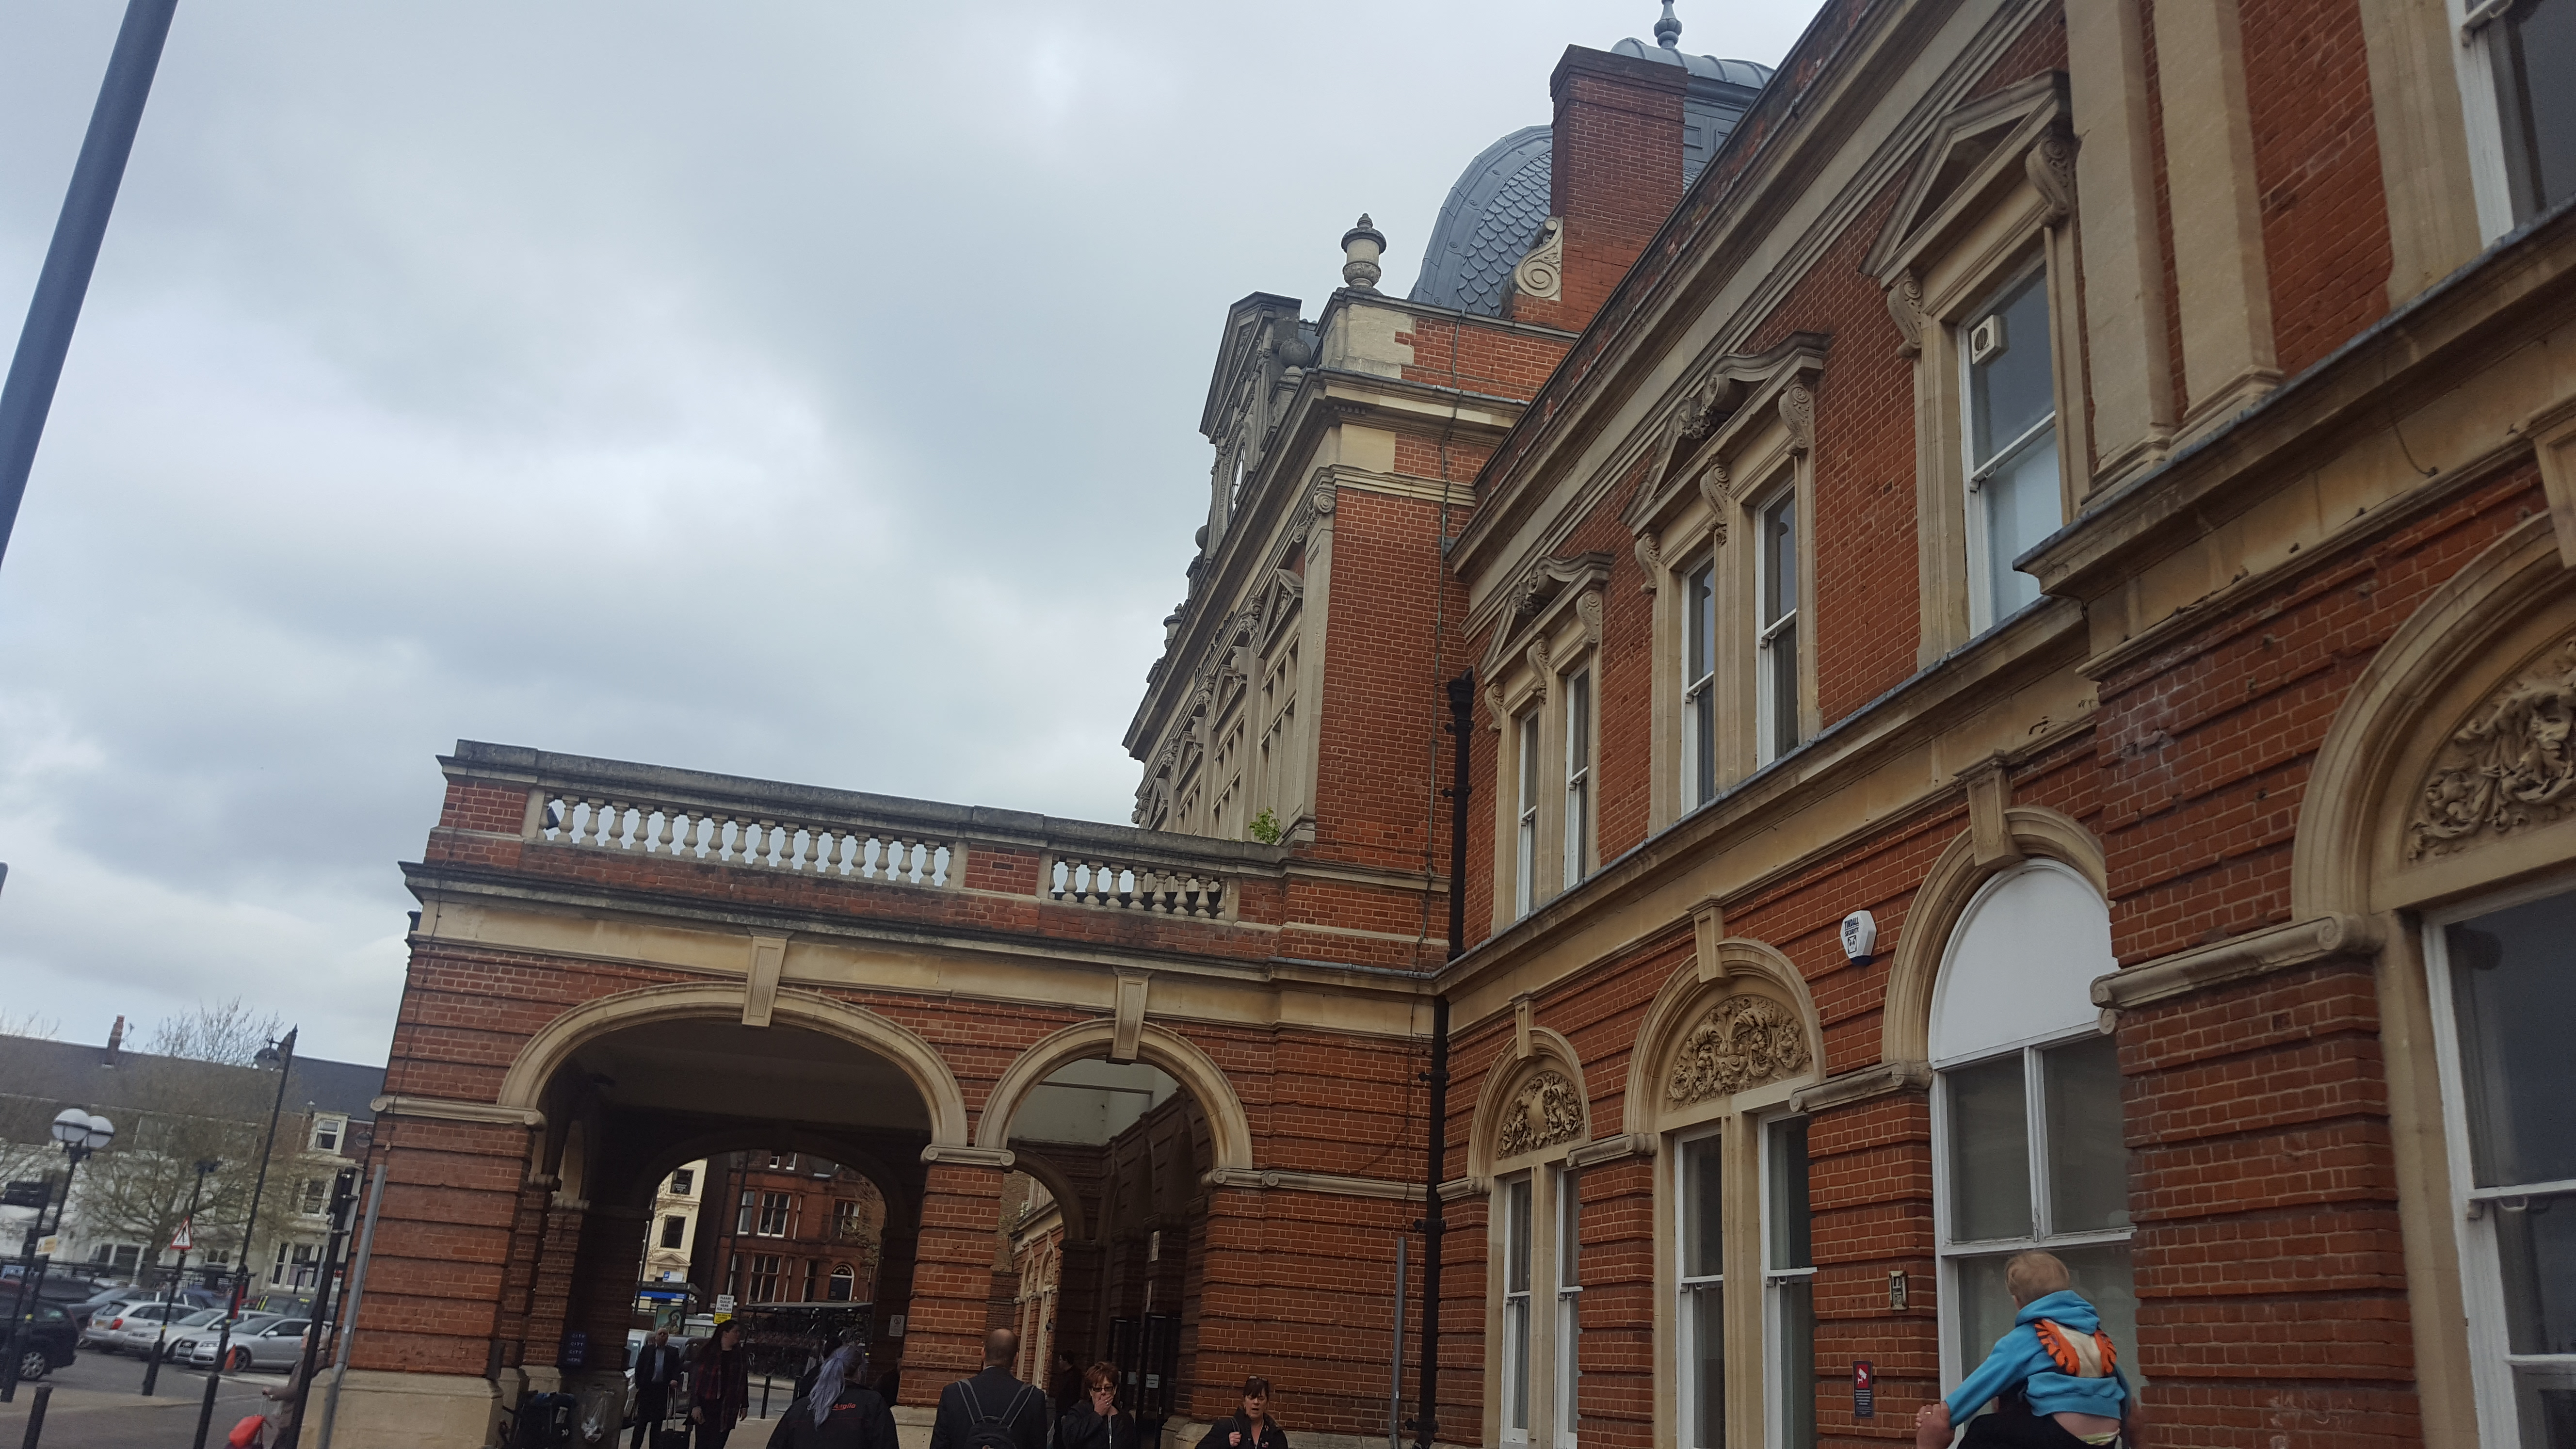 Entrance to Norwich Station on our Rail Adventure